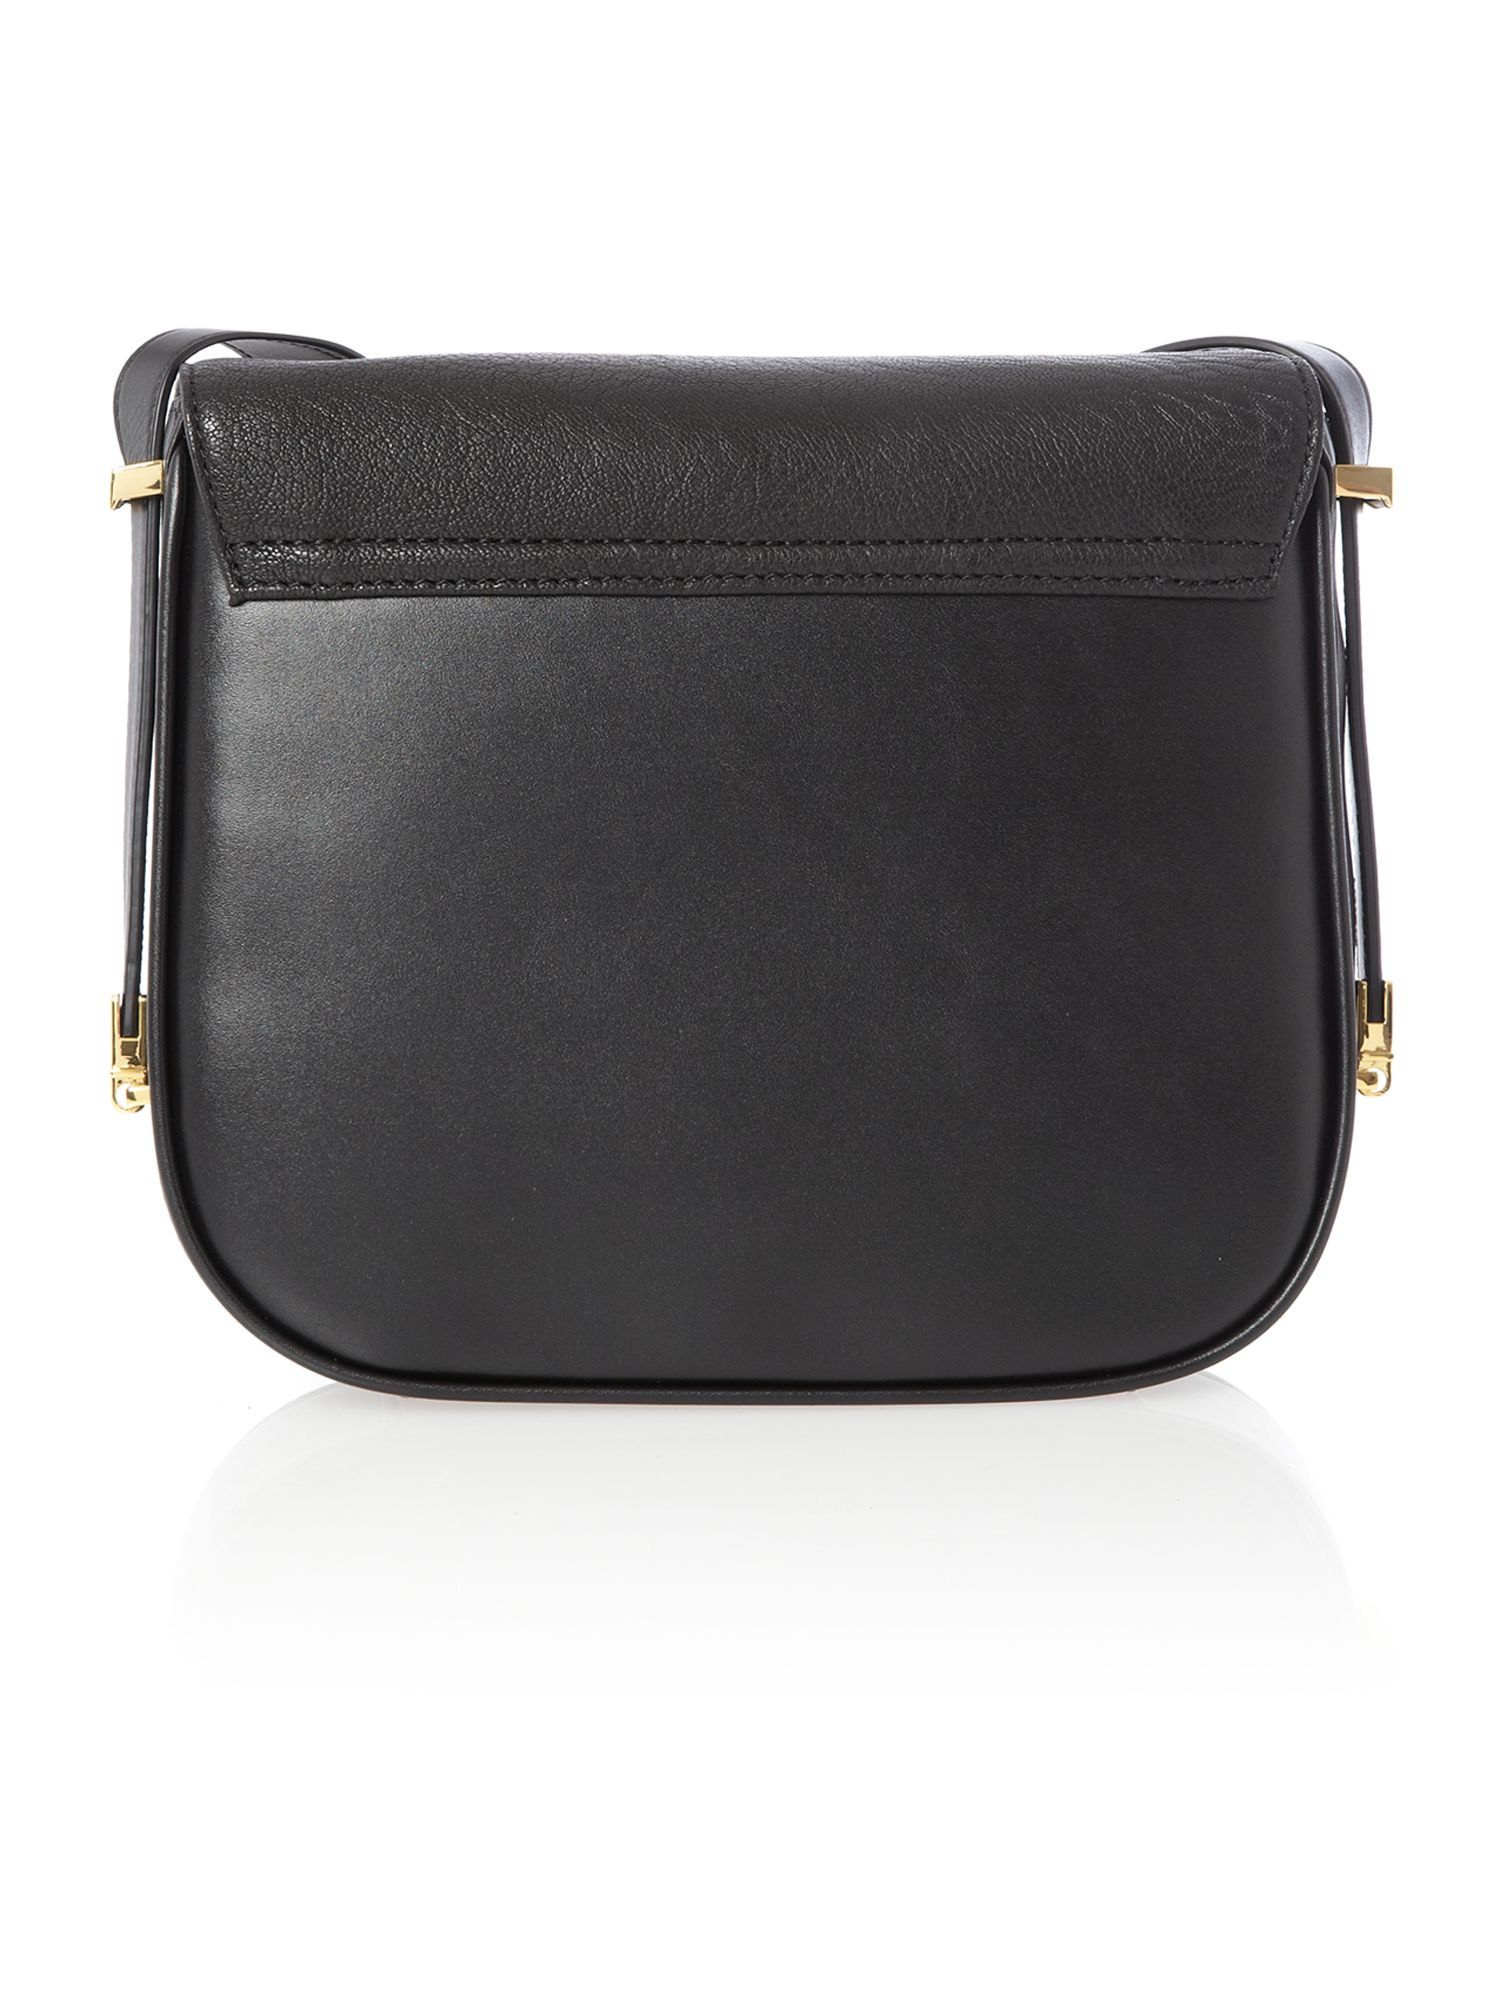 Black bow leather cross body bag